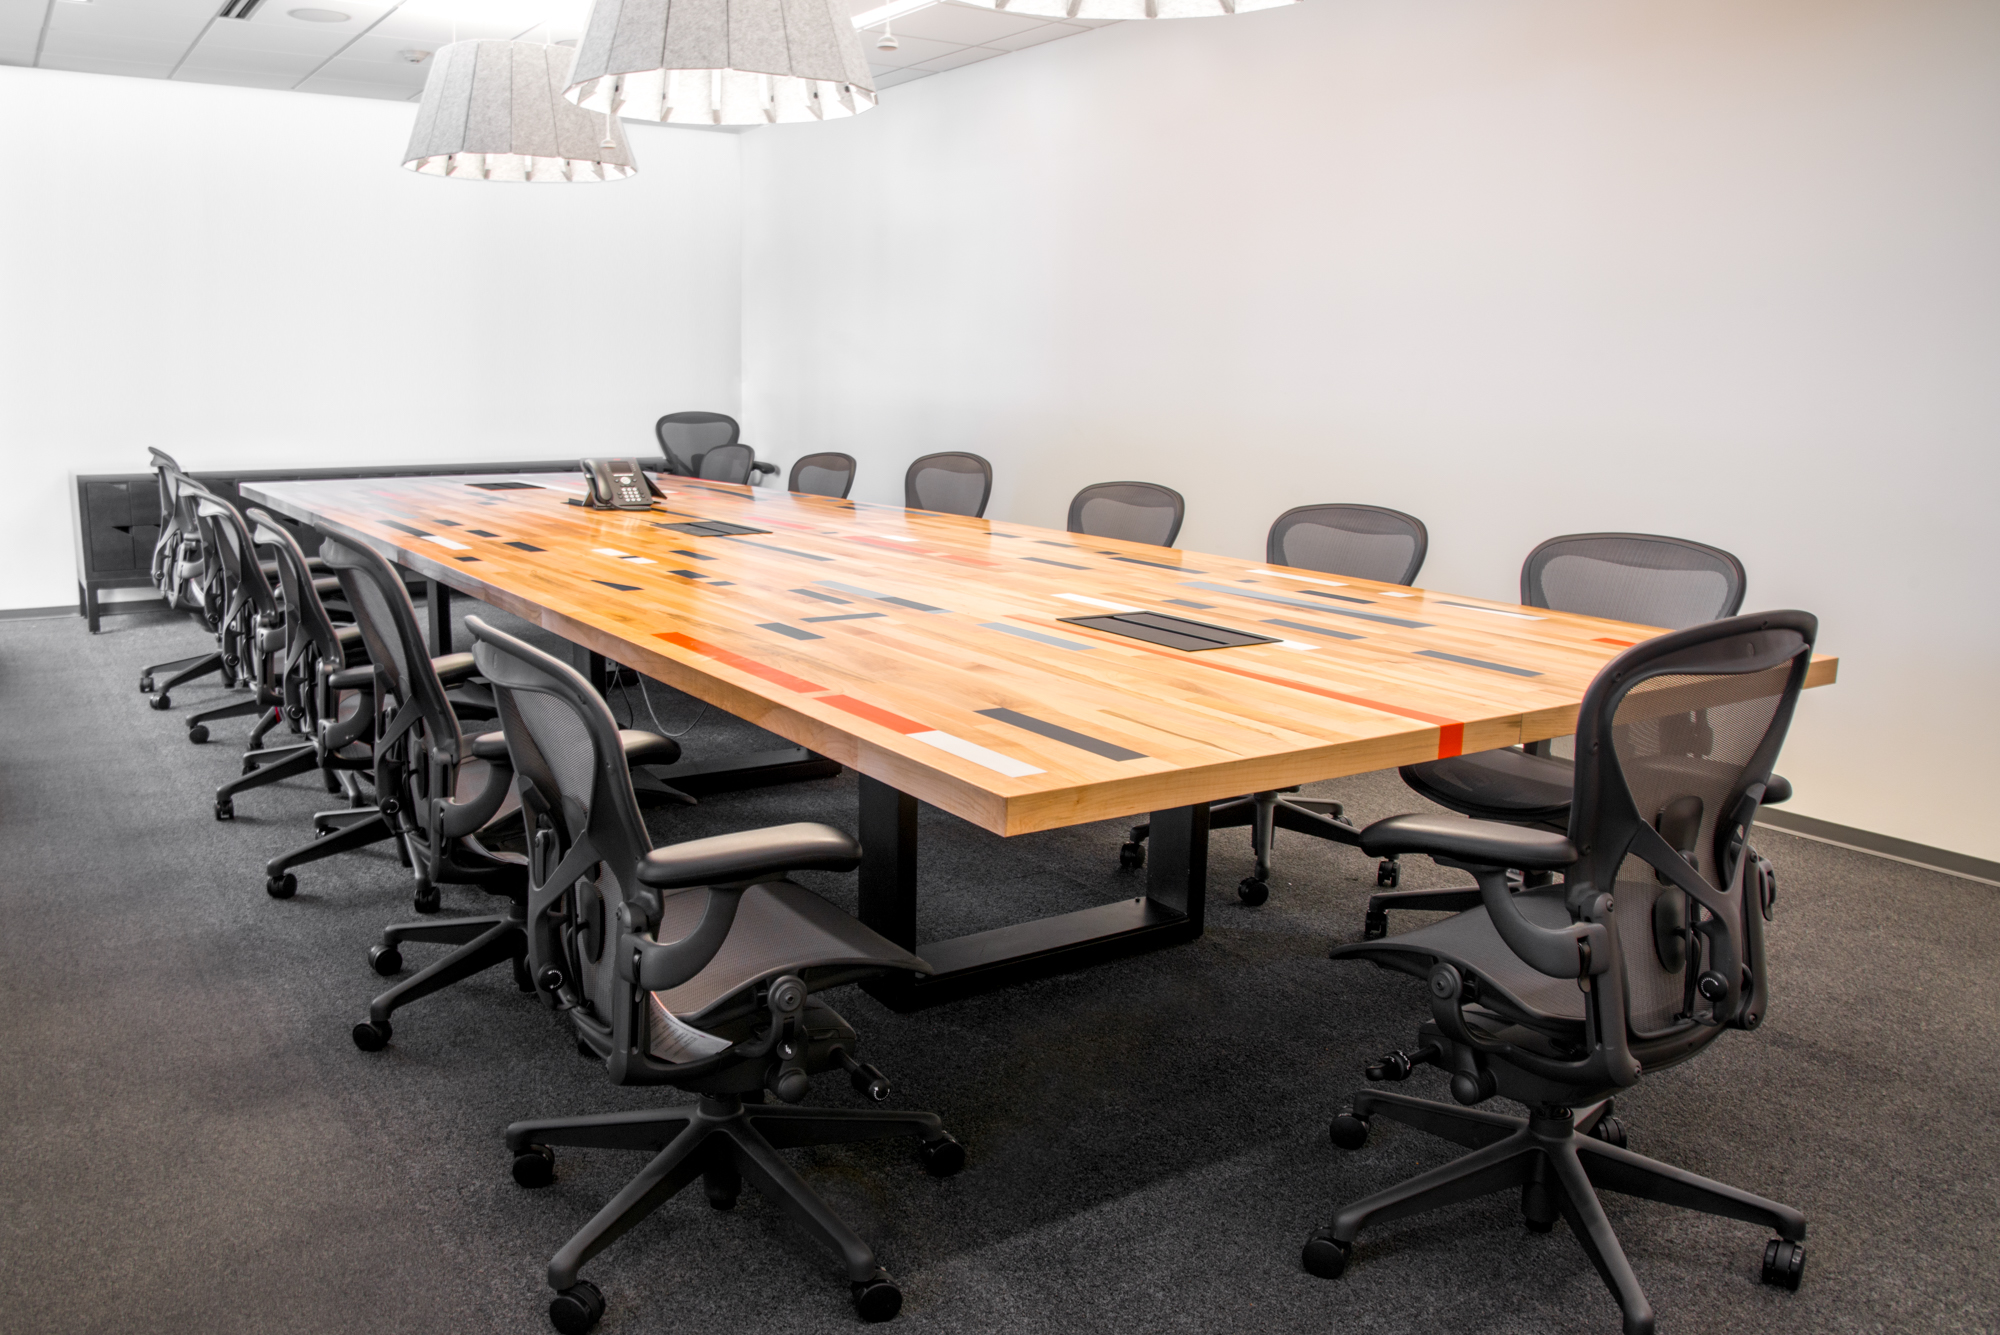 Conference Tables - We design and manufacture commercial furniture for the lobby, common areas, cafes, and conference.  To learn more about our furniture click here.